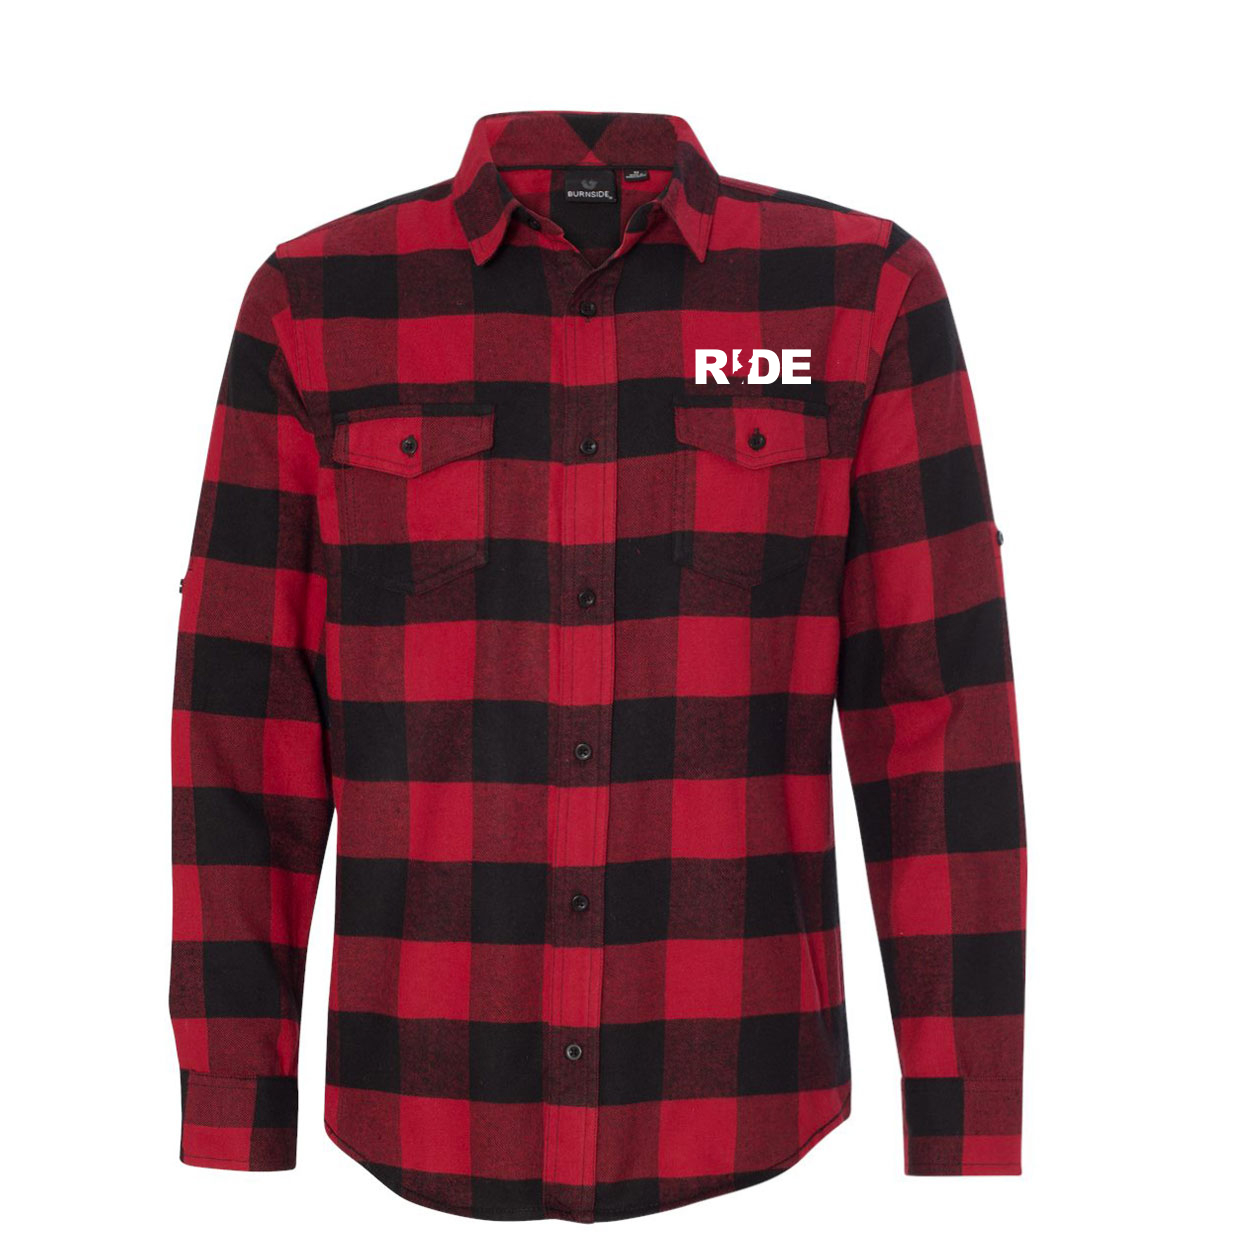 Ride New Jersey Classic Unisex Long Sleeve Flannel Shirt Red/Black Buffalo (White Logo)